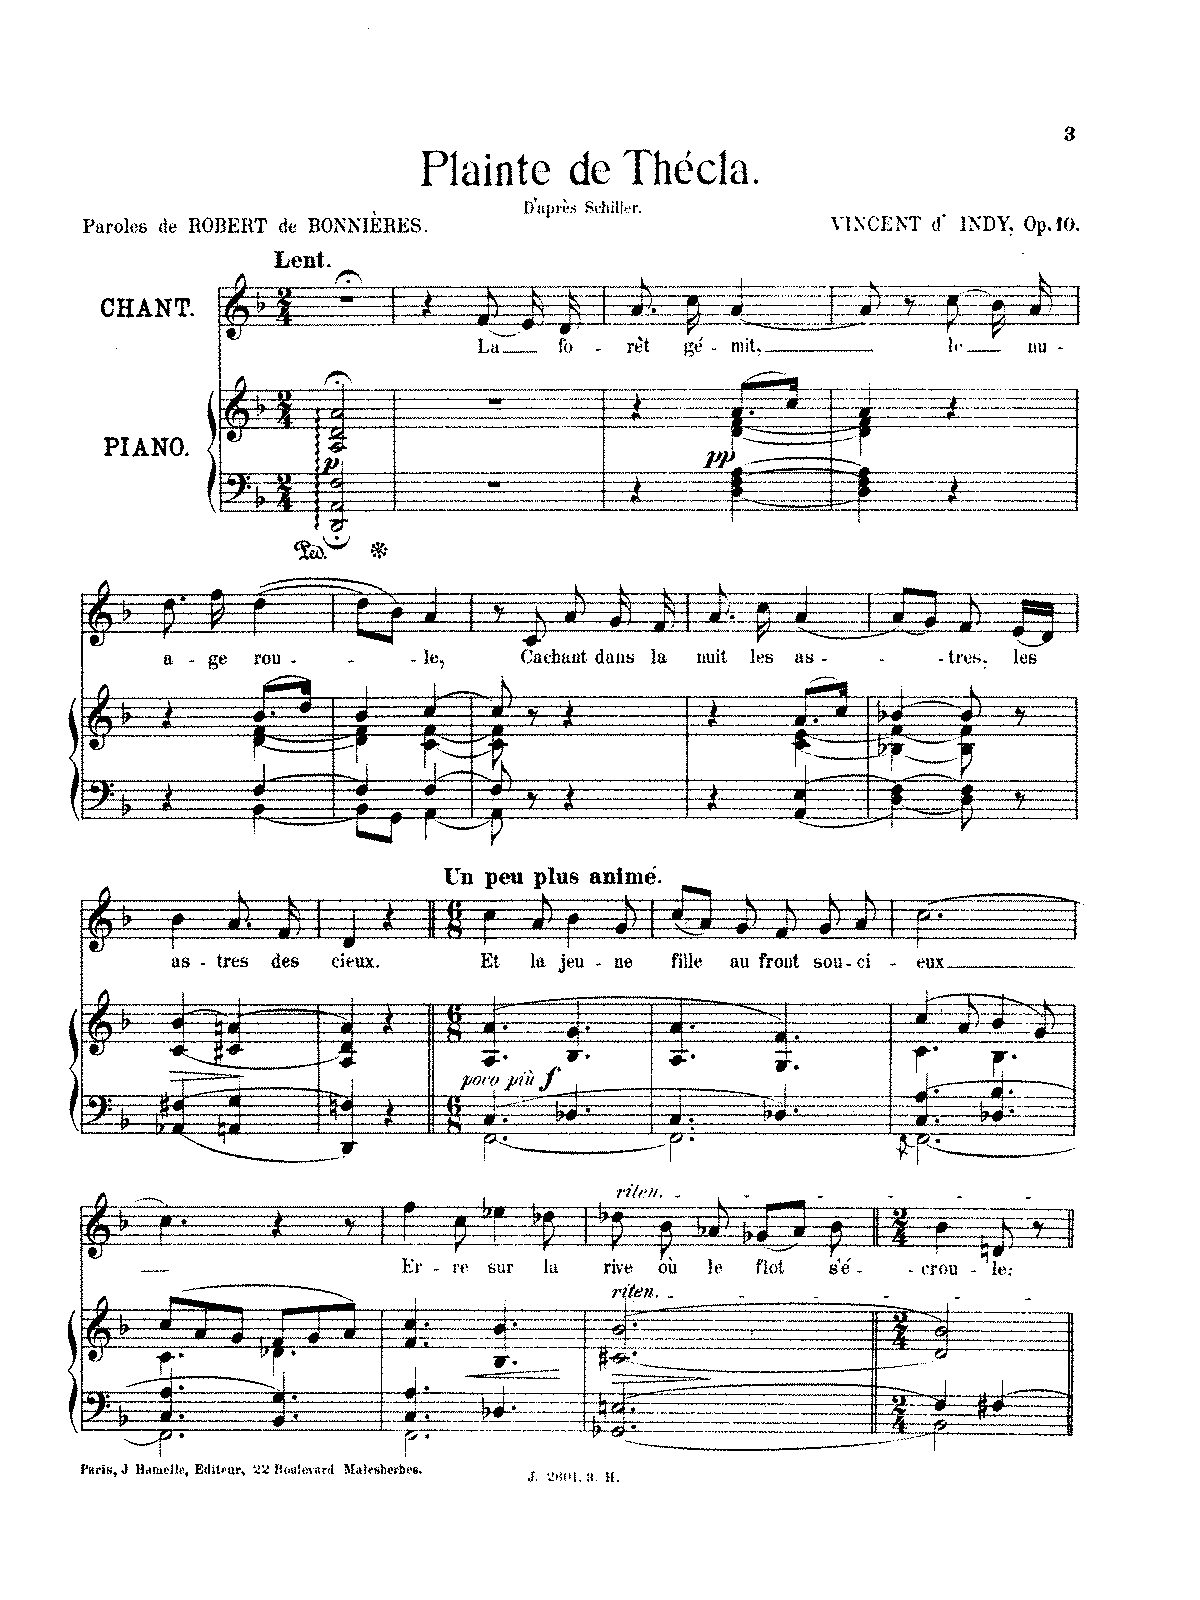 D'Indy - Plainte de Thécla, Op. 10 (voice and piano).pdf